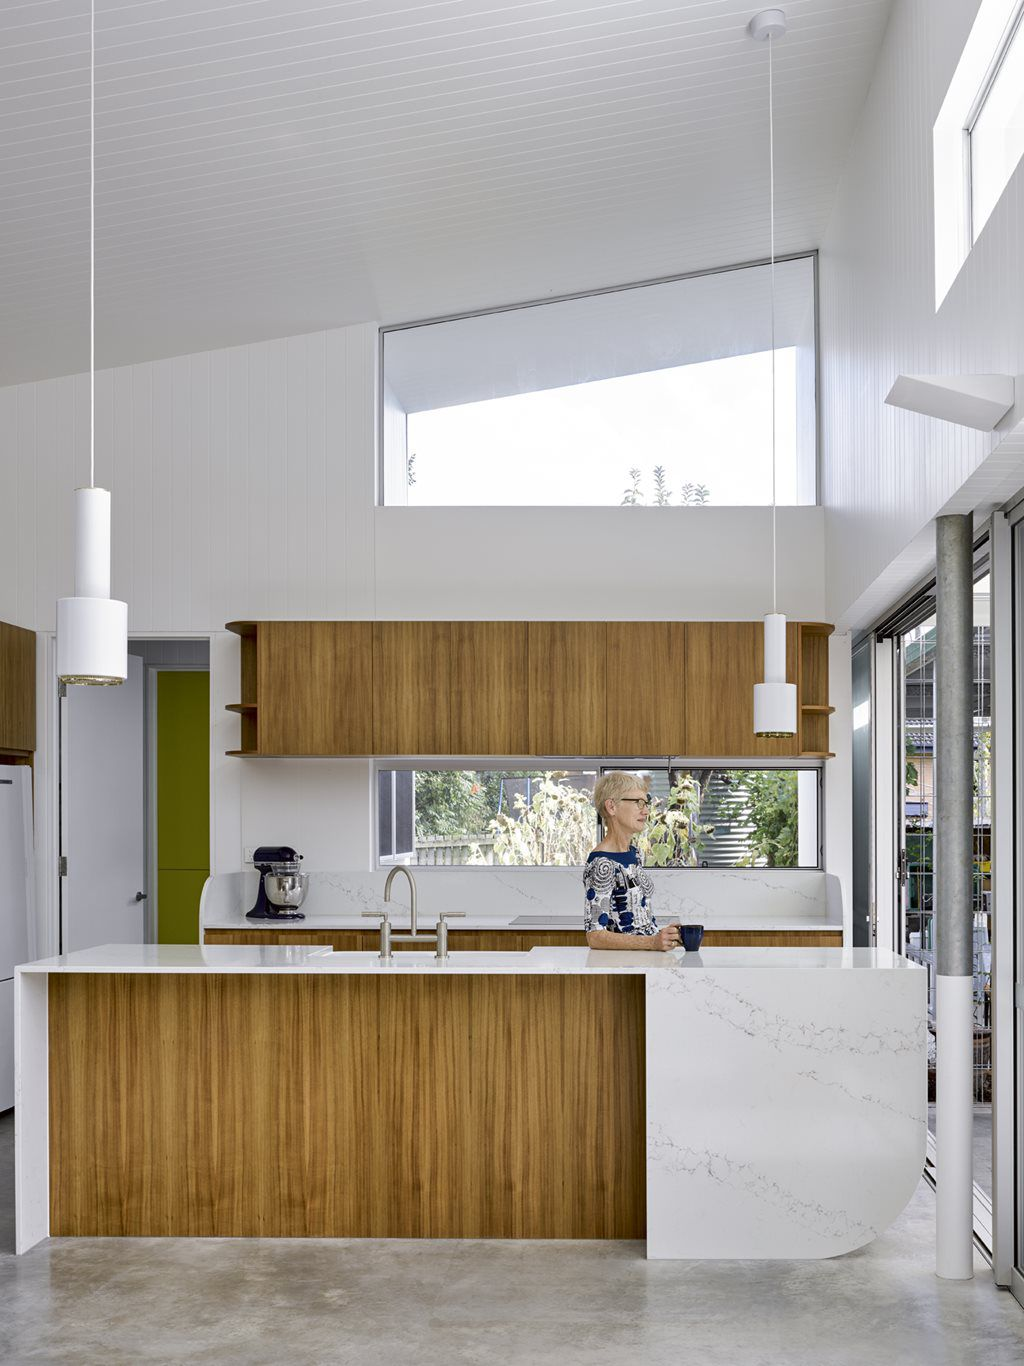 Kitchen with white walls and pendant lamps